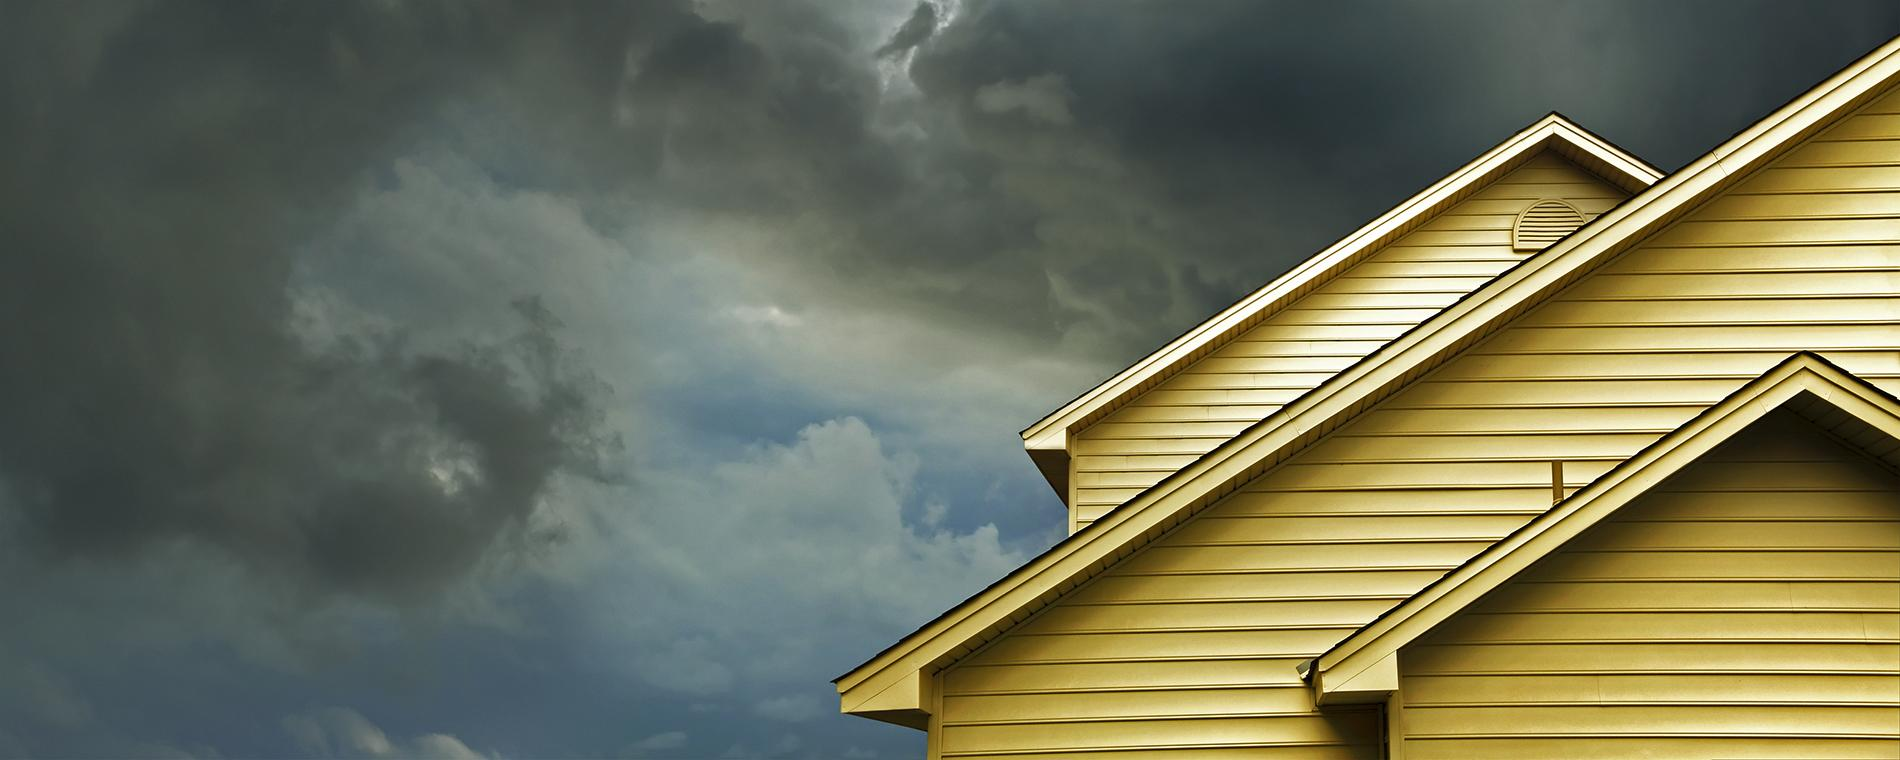 Make sure you have enough coverage to rebuild your house after a tornado